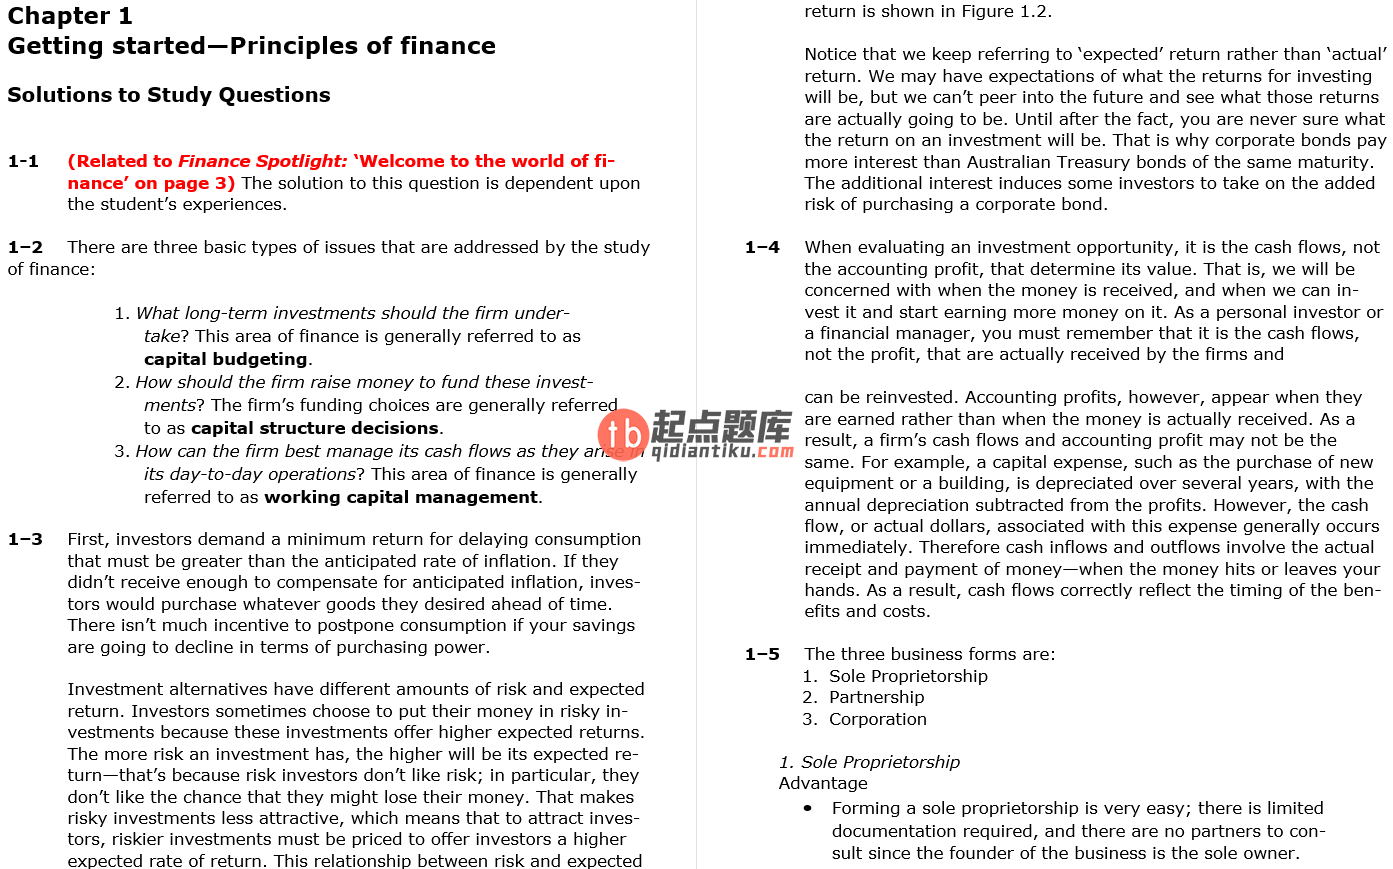 solution manual for Financial Management: Principles and Applications 7th Edition的图片 3